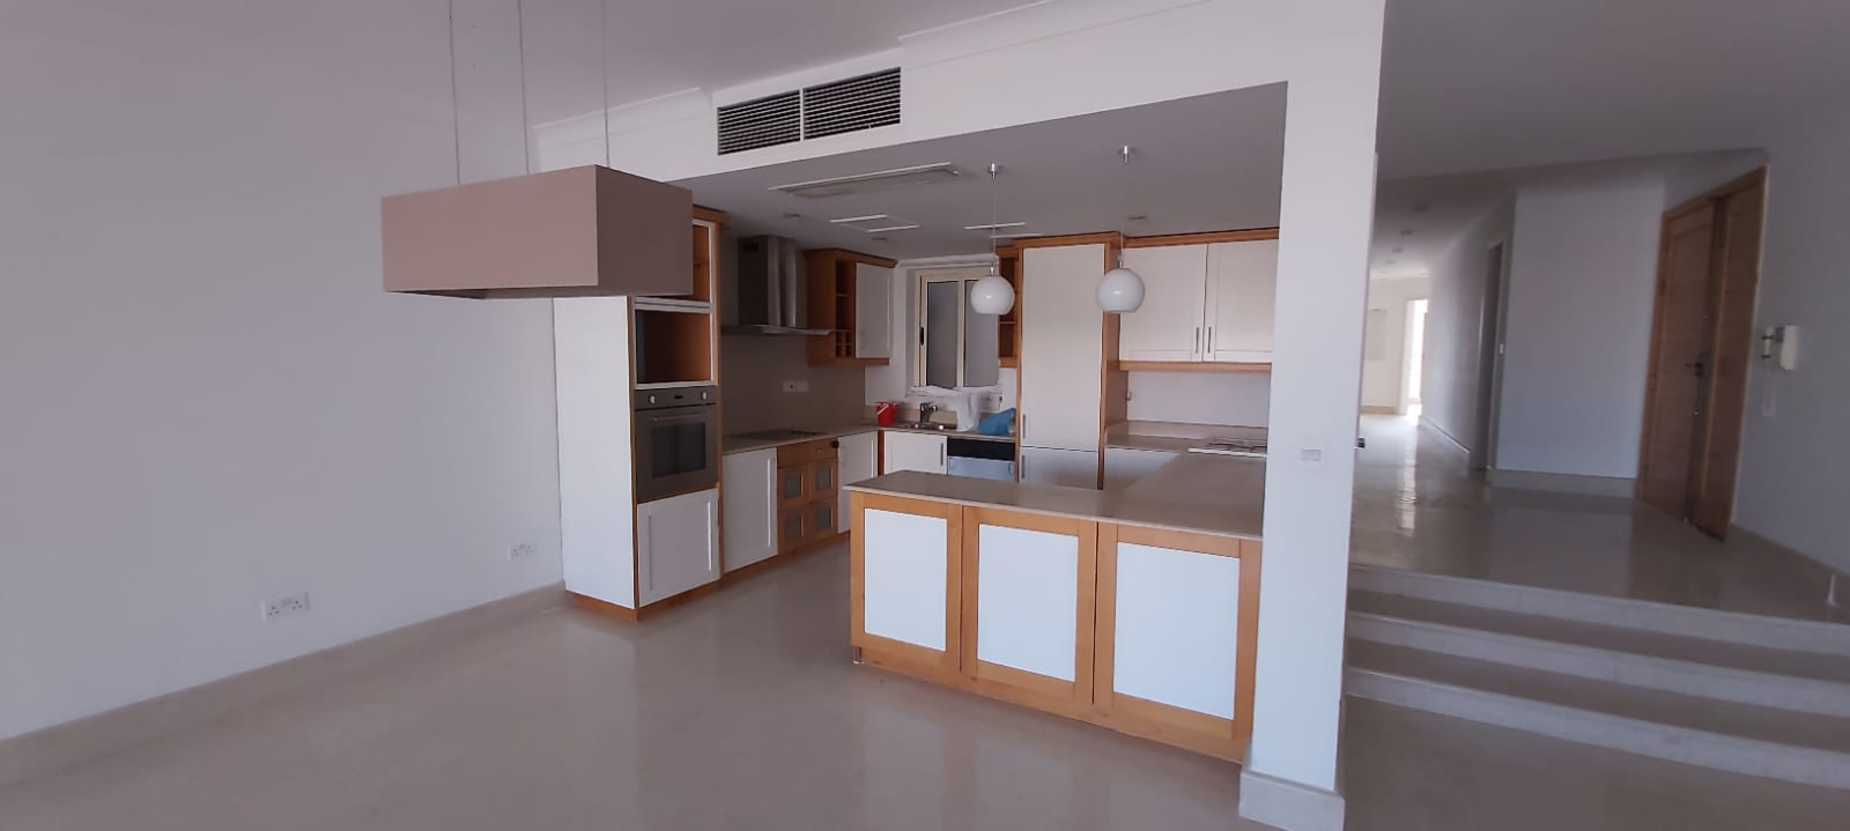 3 bed Apartment For Sale in St Julians,  - thumb 9